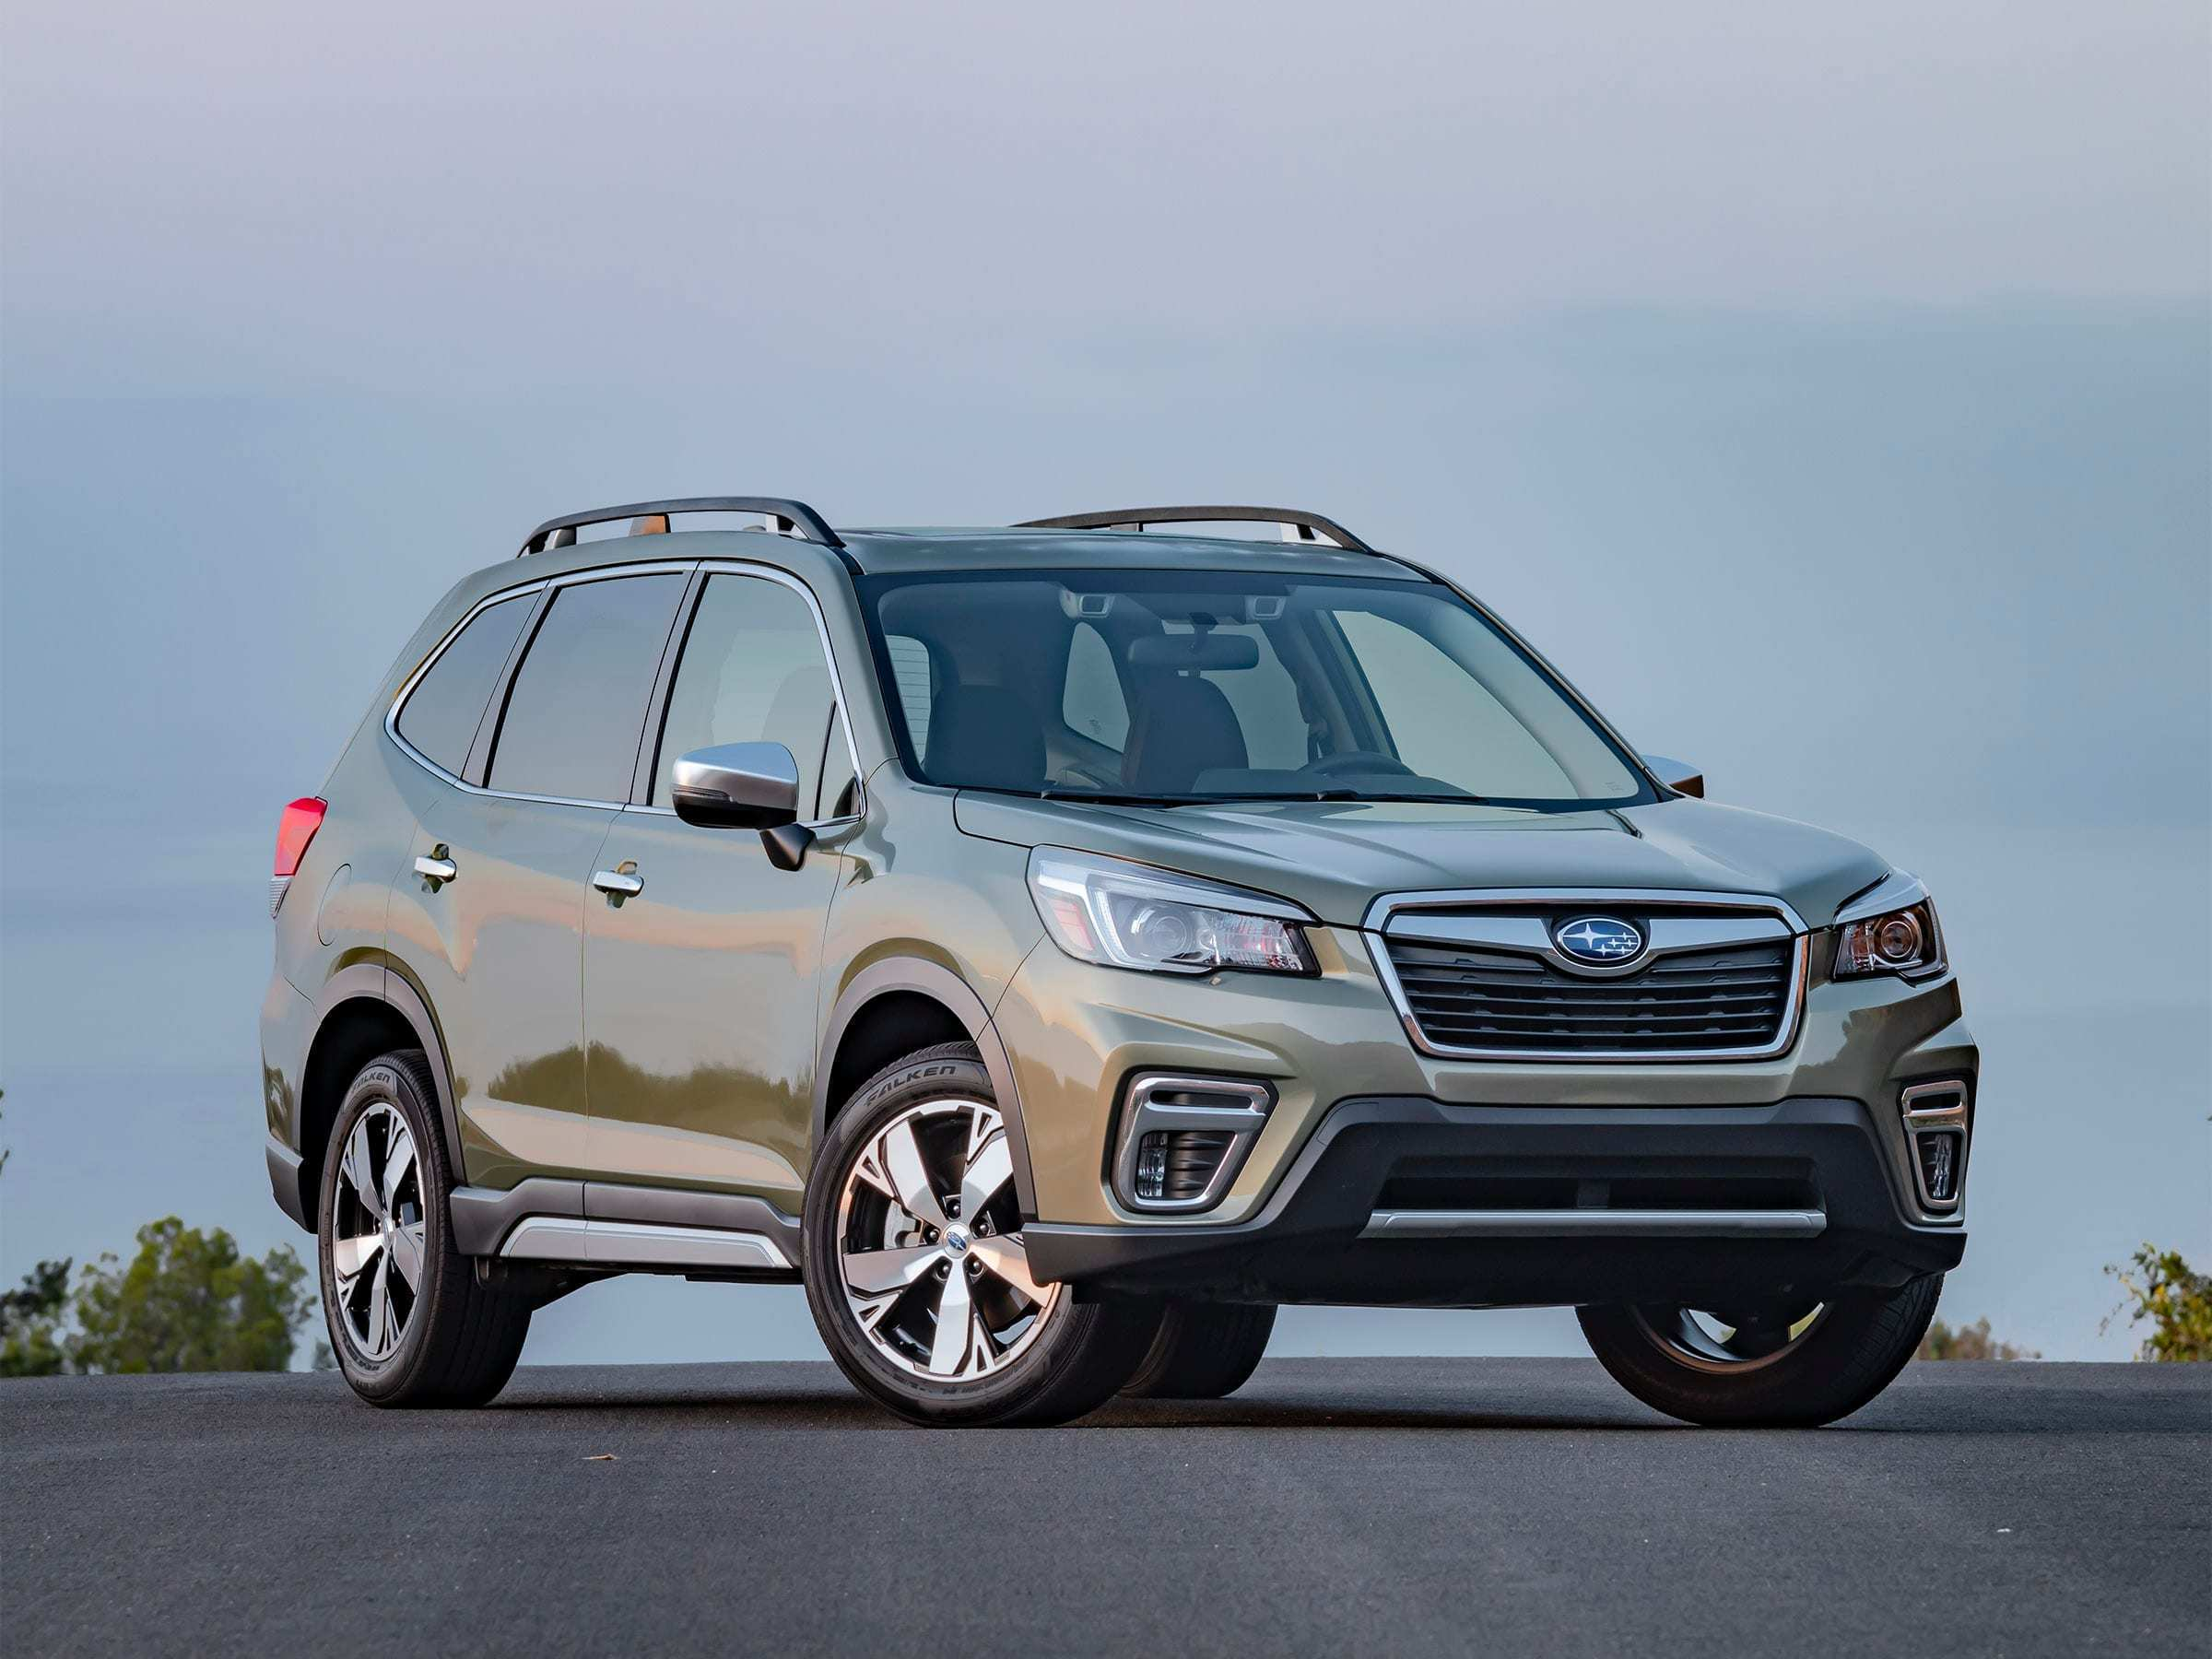 92 A Next Generation Subaru Forester 2019 Price Design And Review